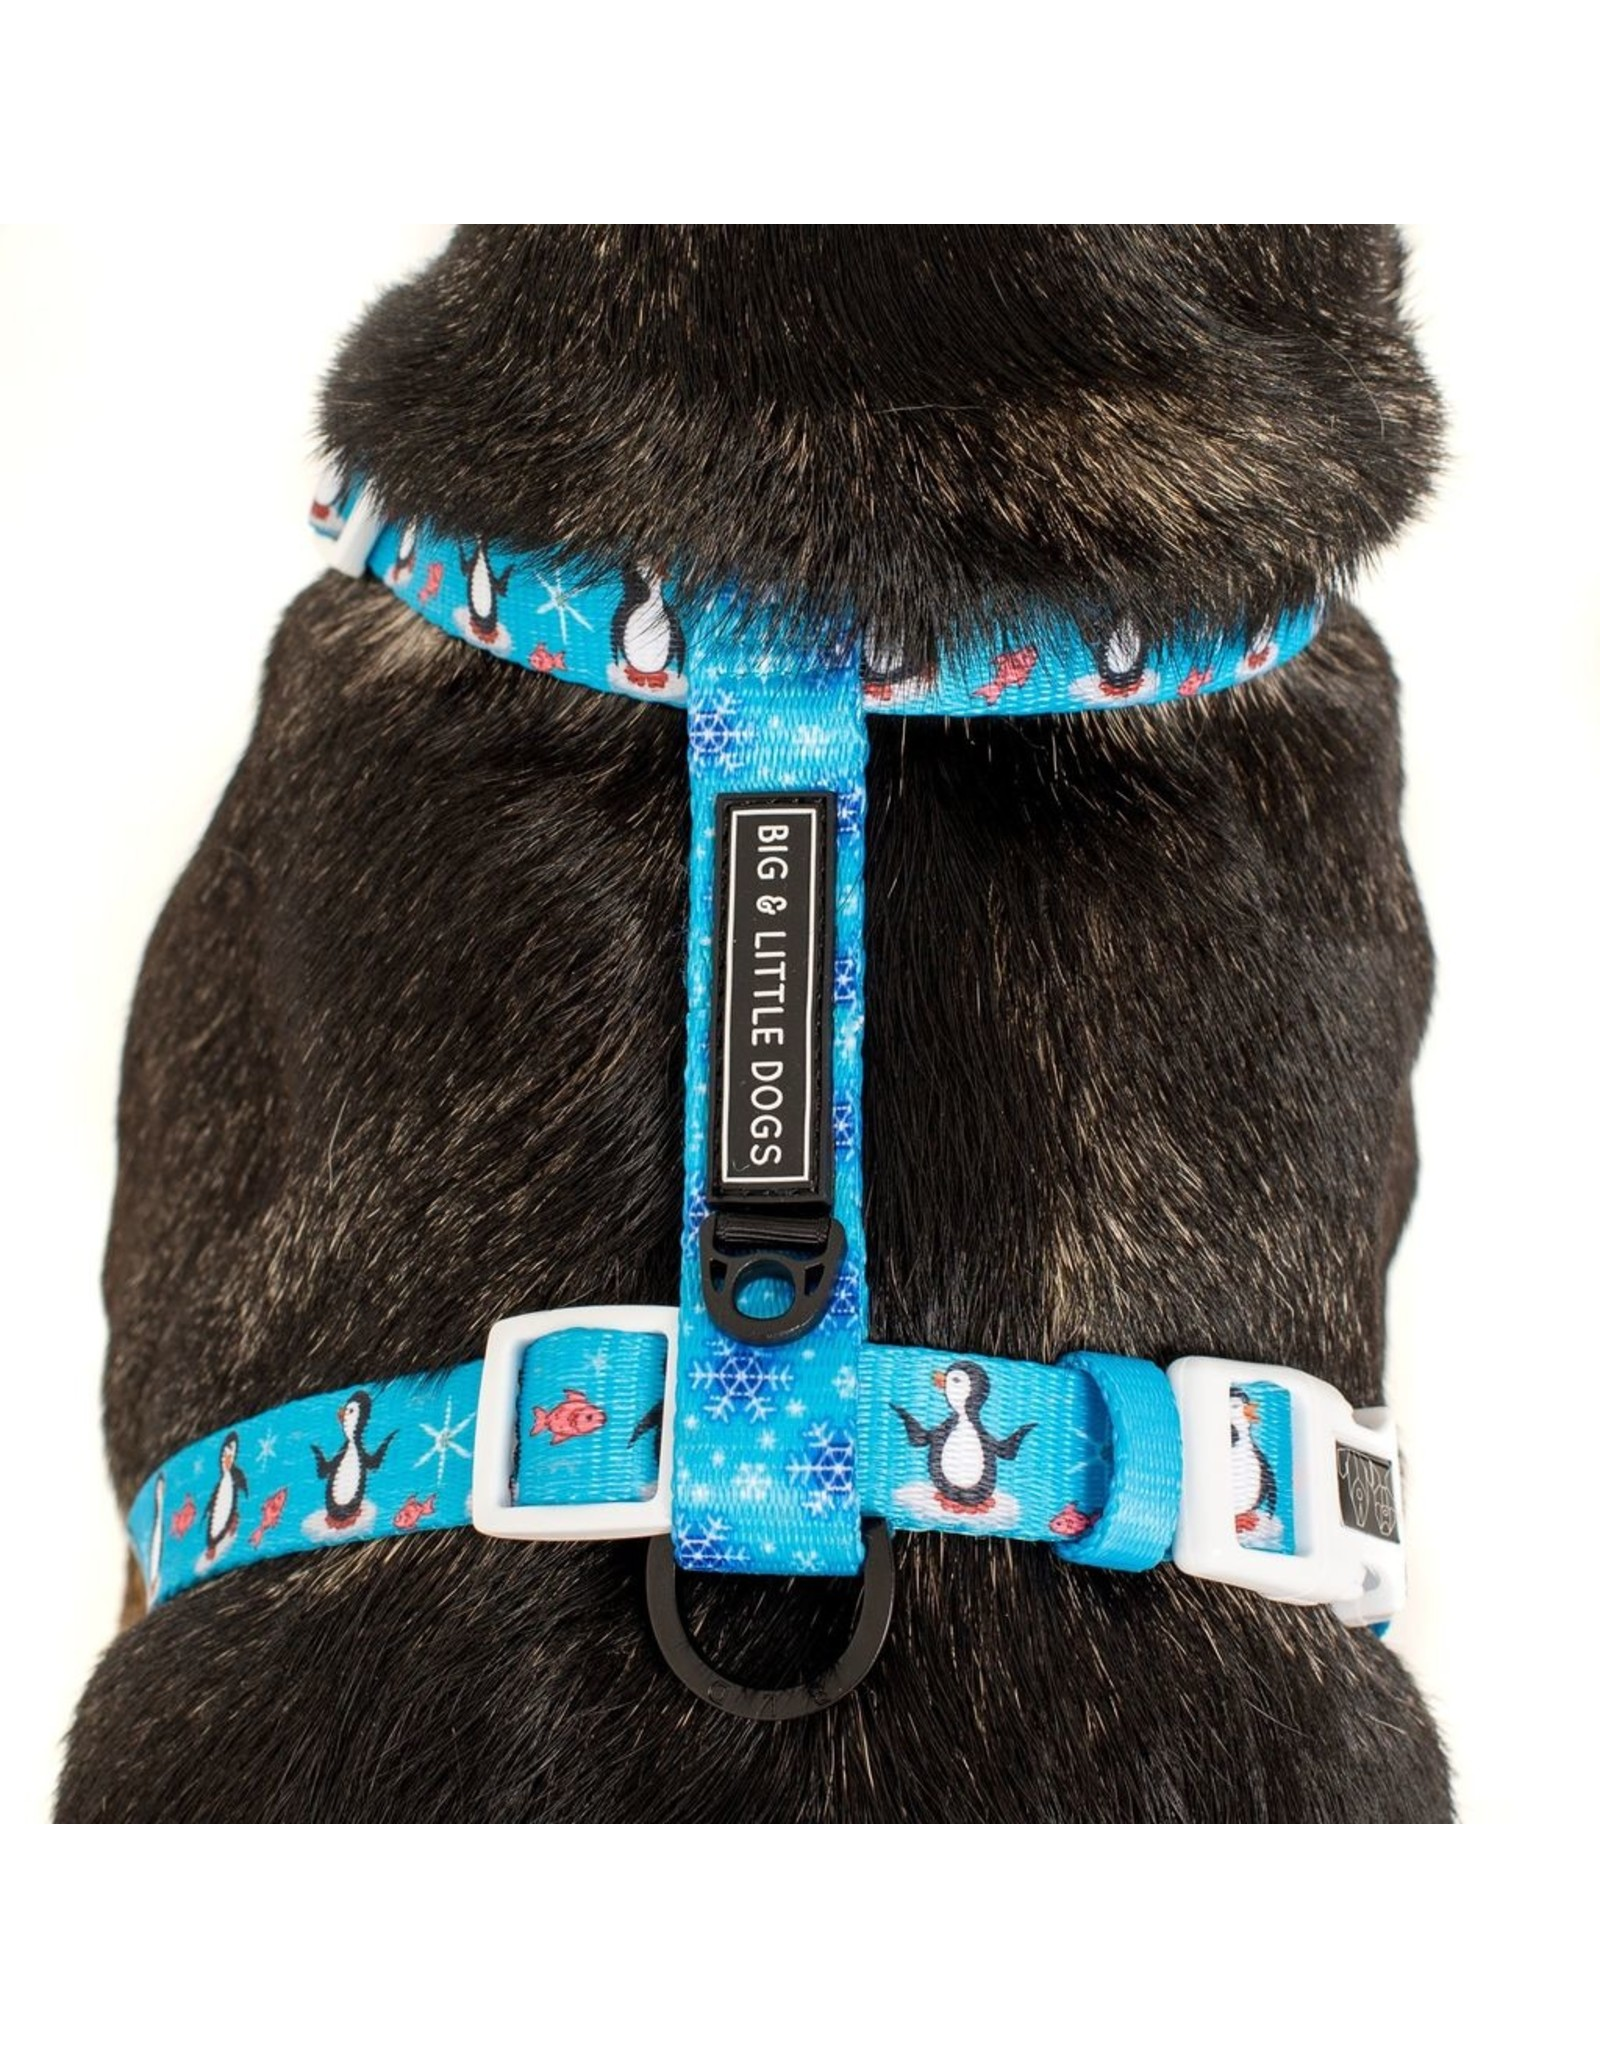 Big and Little Dogs Big and Little Dogs Strap Harness Every Day I'm Waddlin'